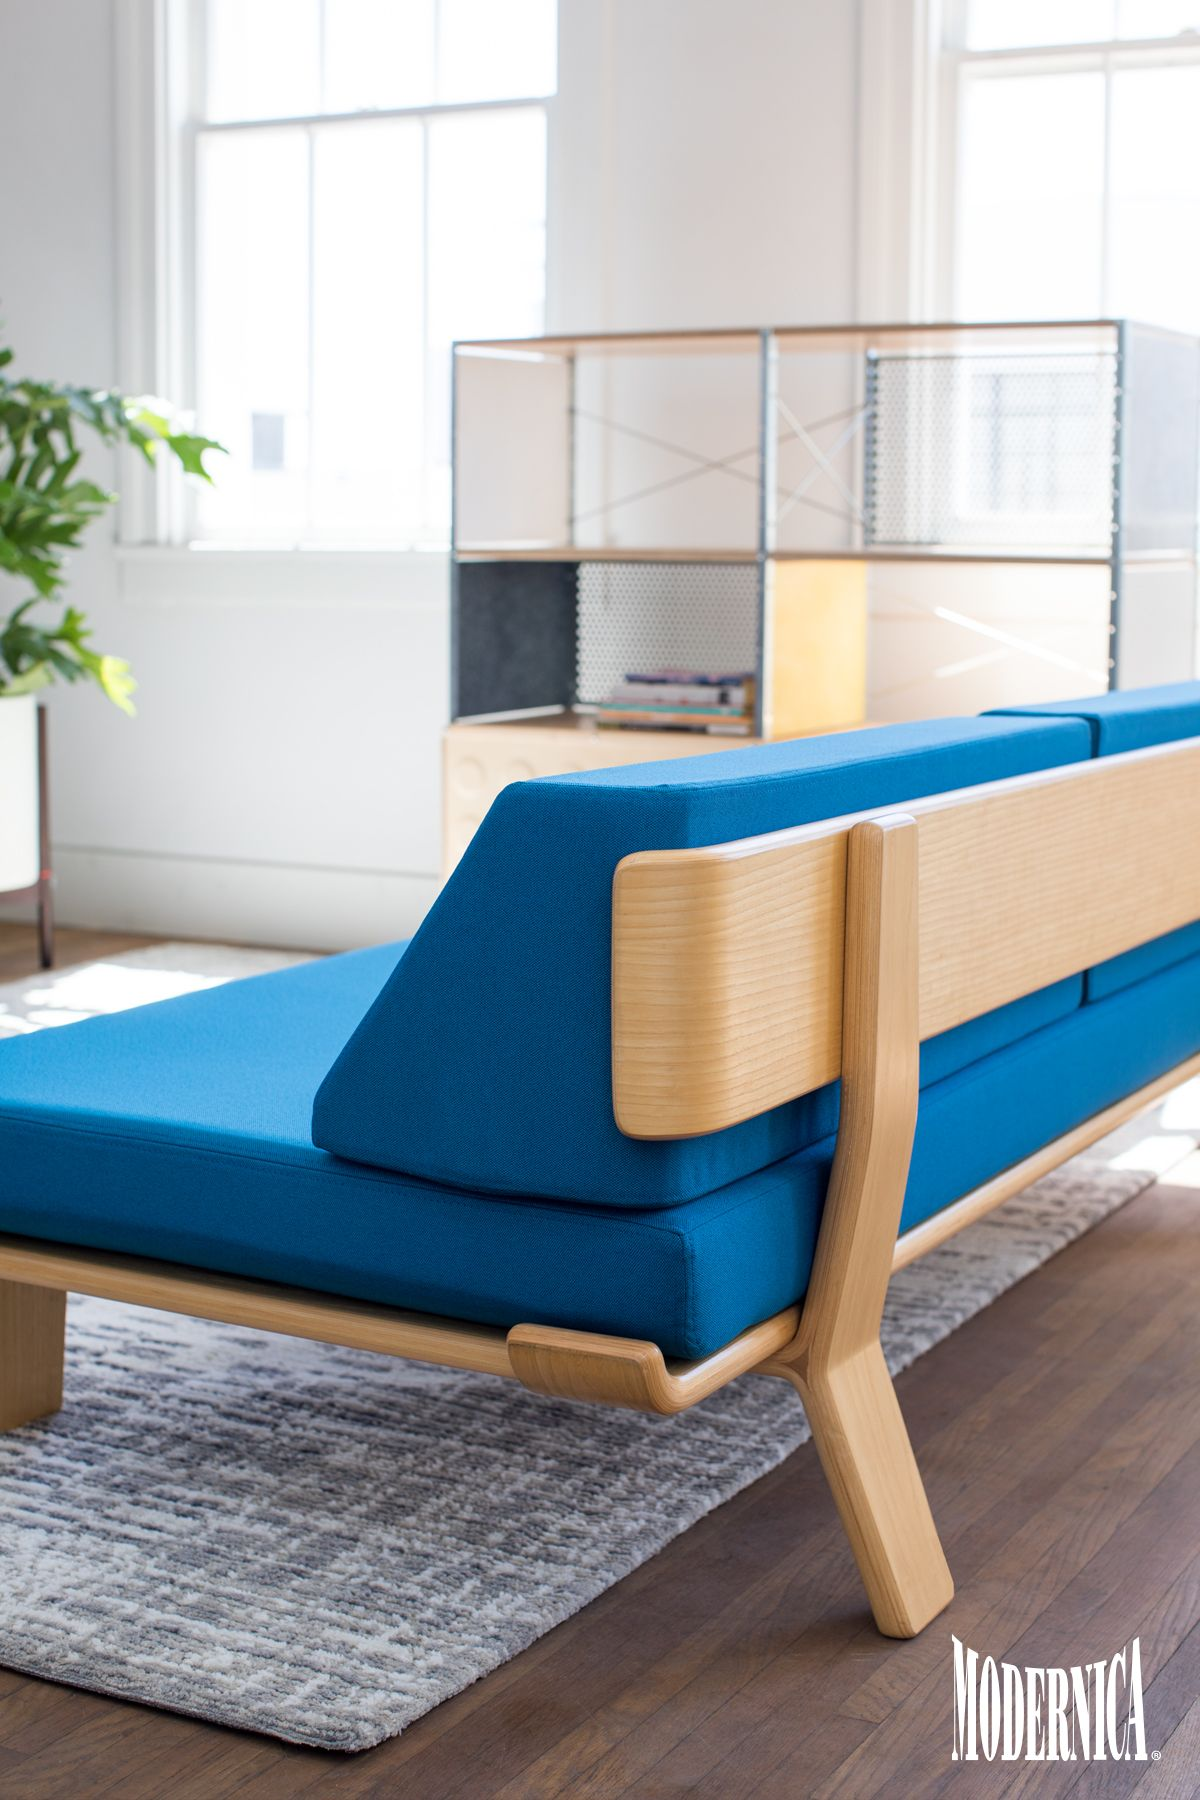 Modernica Case Study® Alpine Daybed / Modern Furniture Made In California